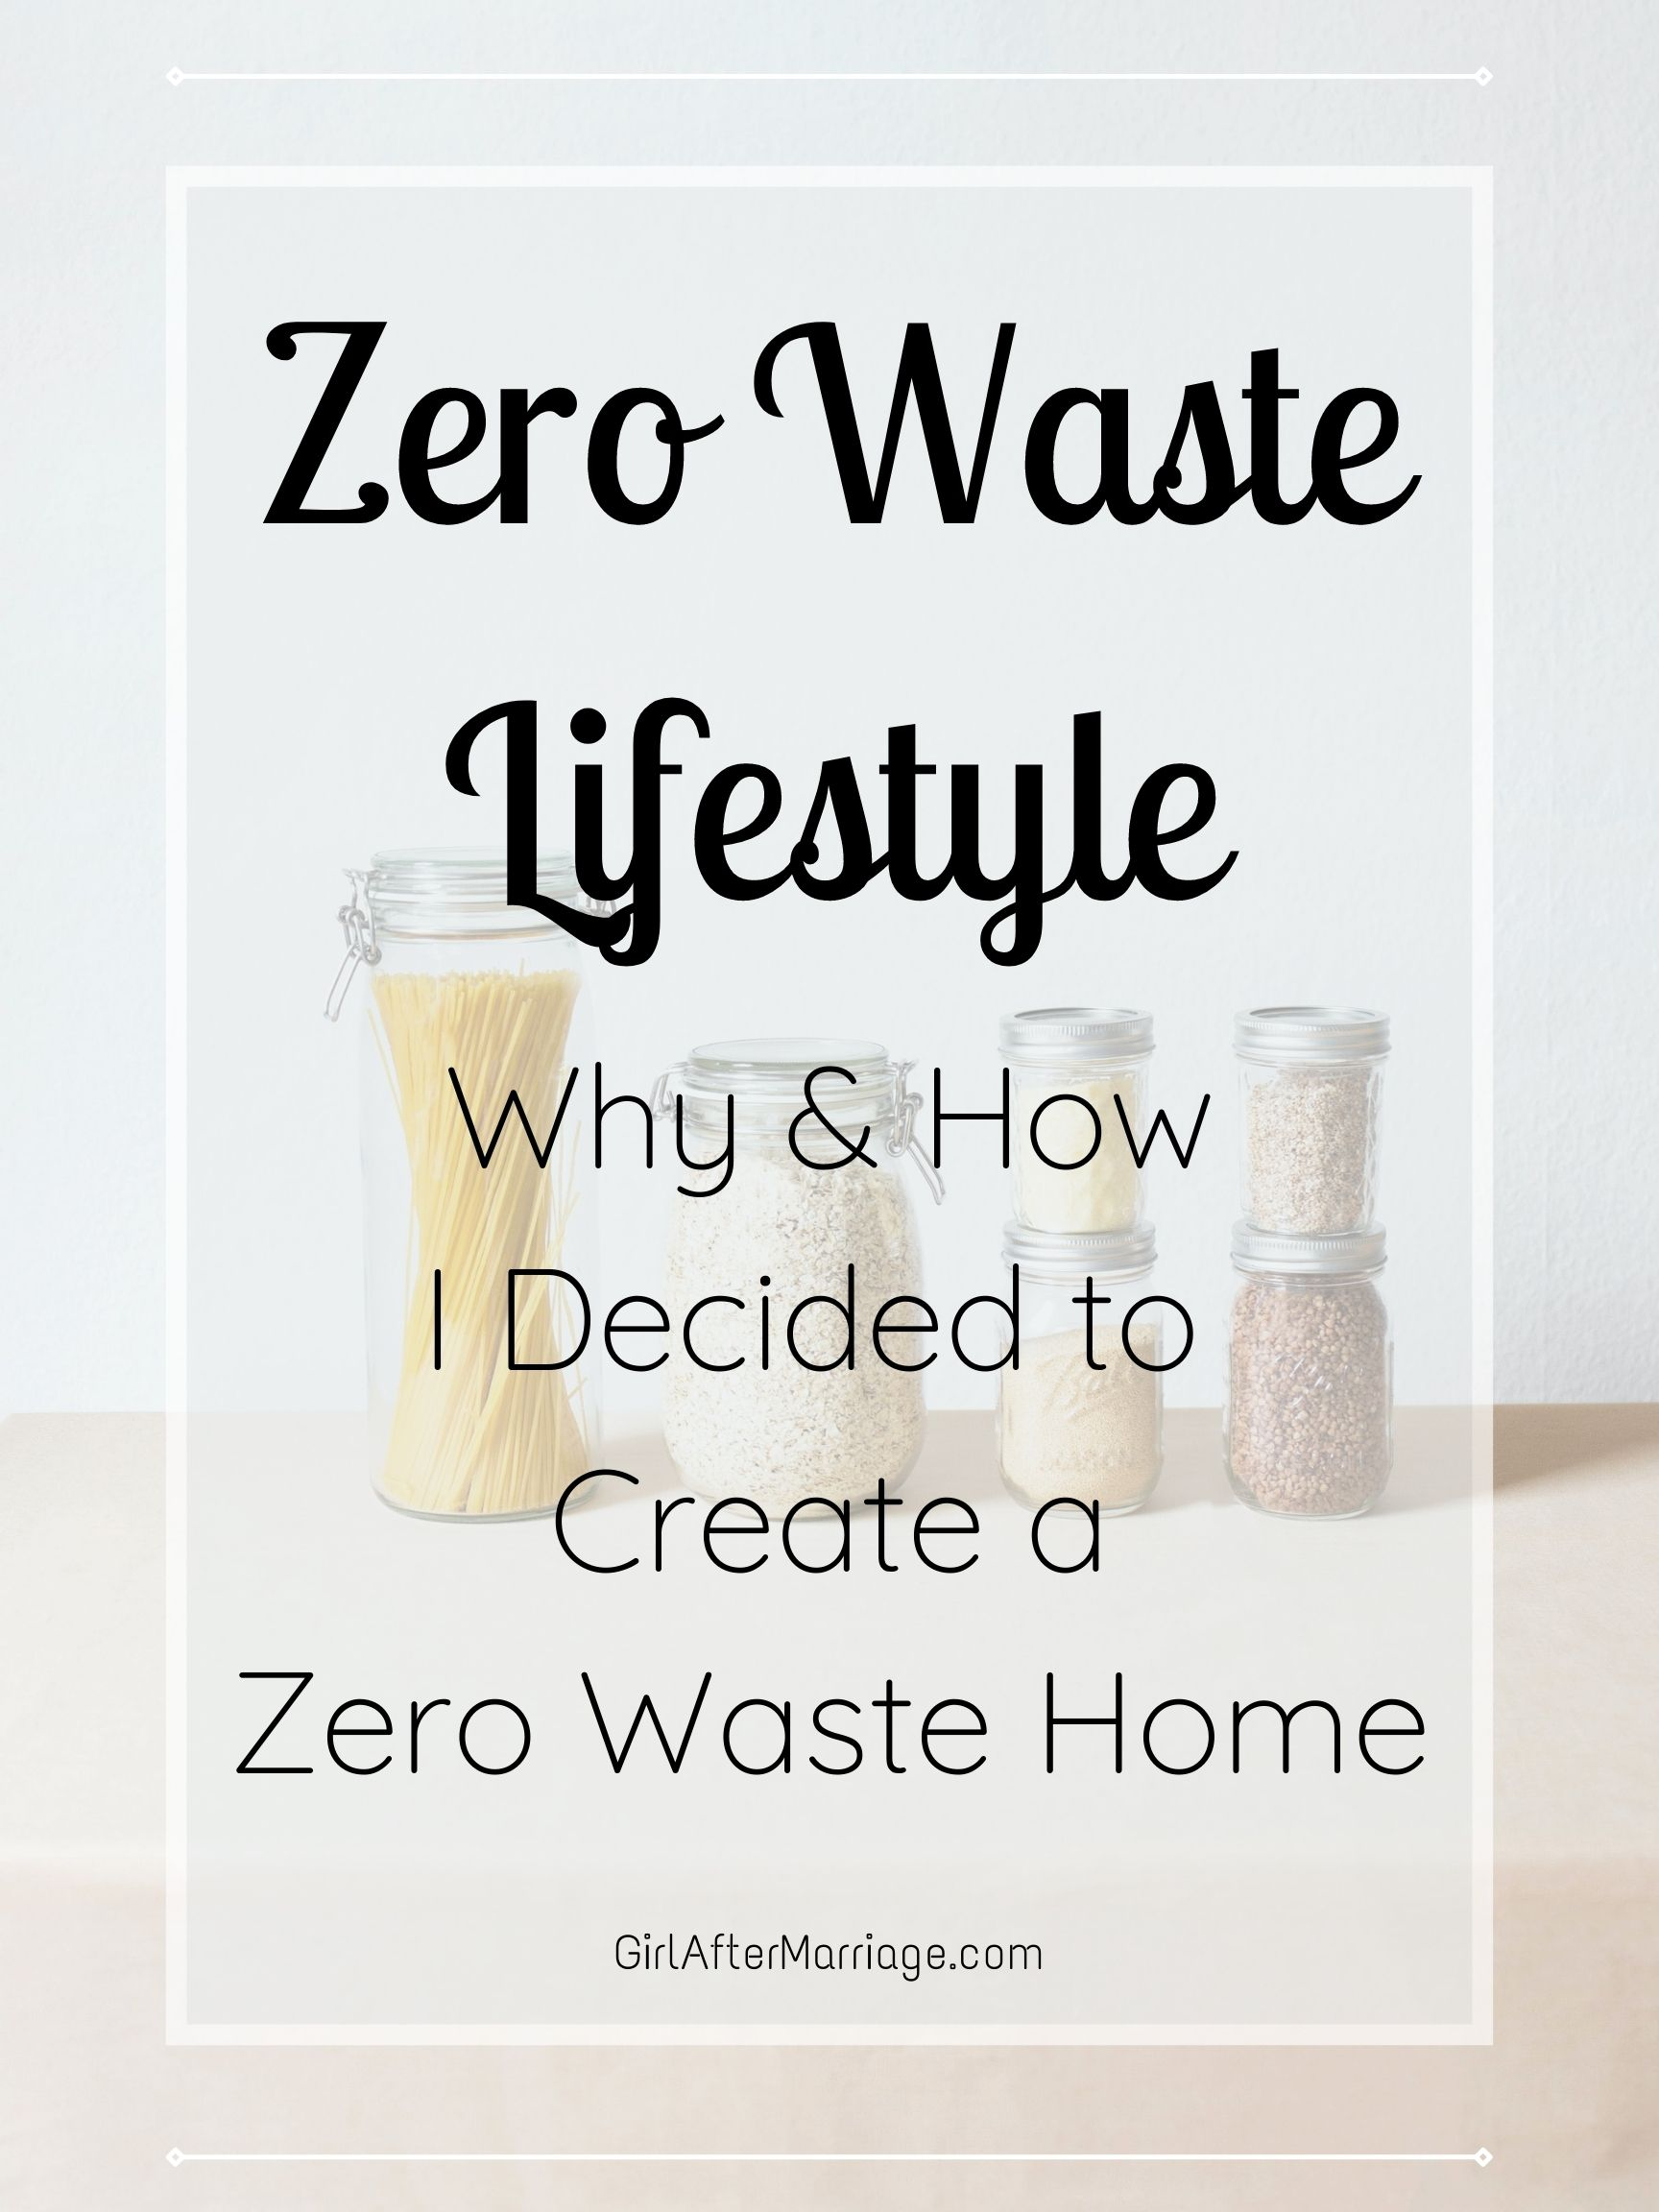 https://girlaftermarriage.com/decided-zero-waste-home/